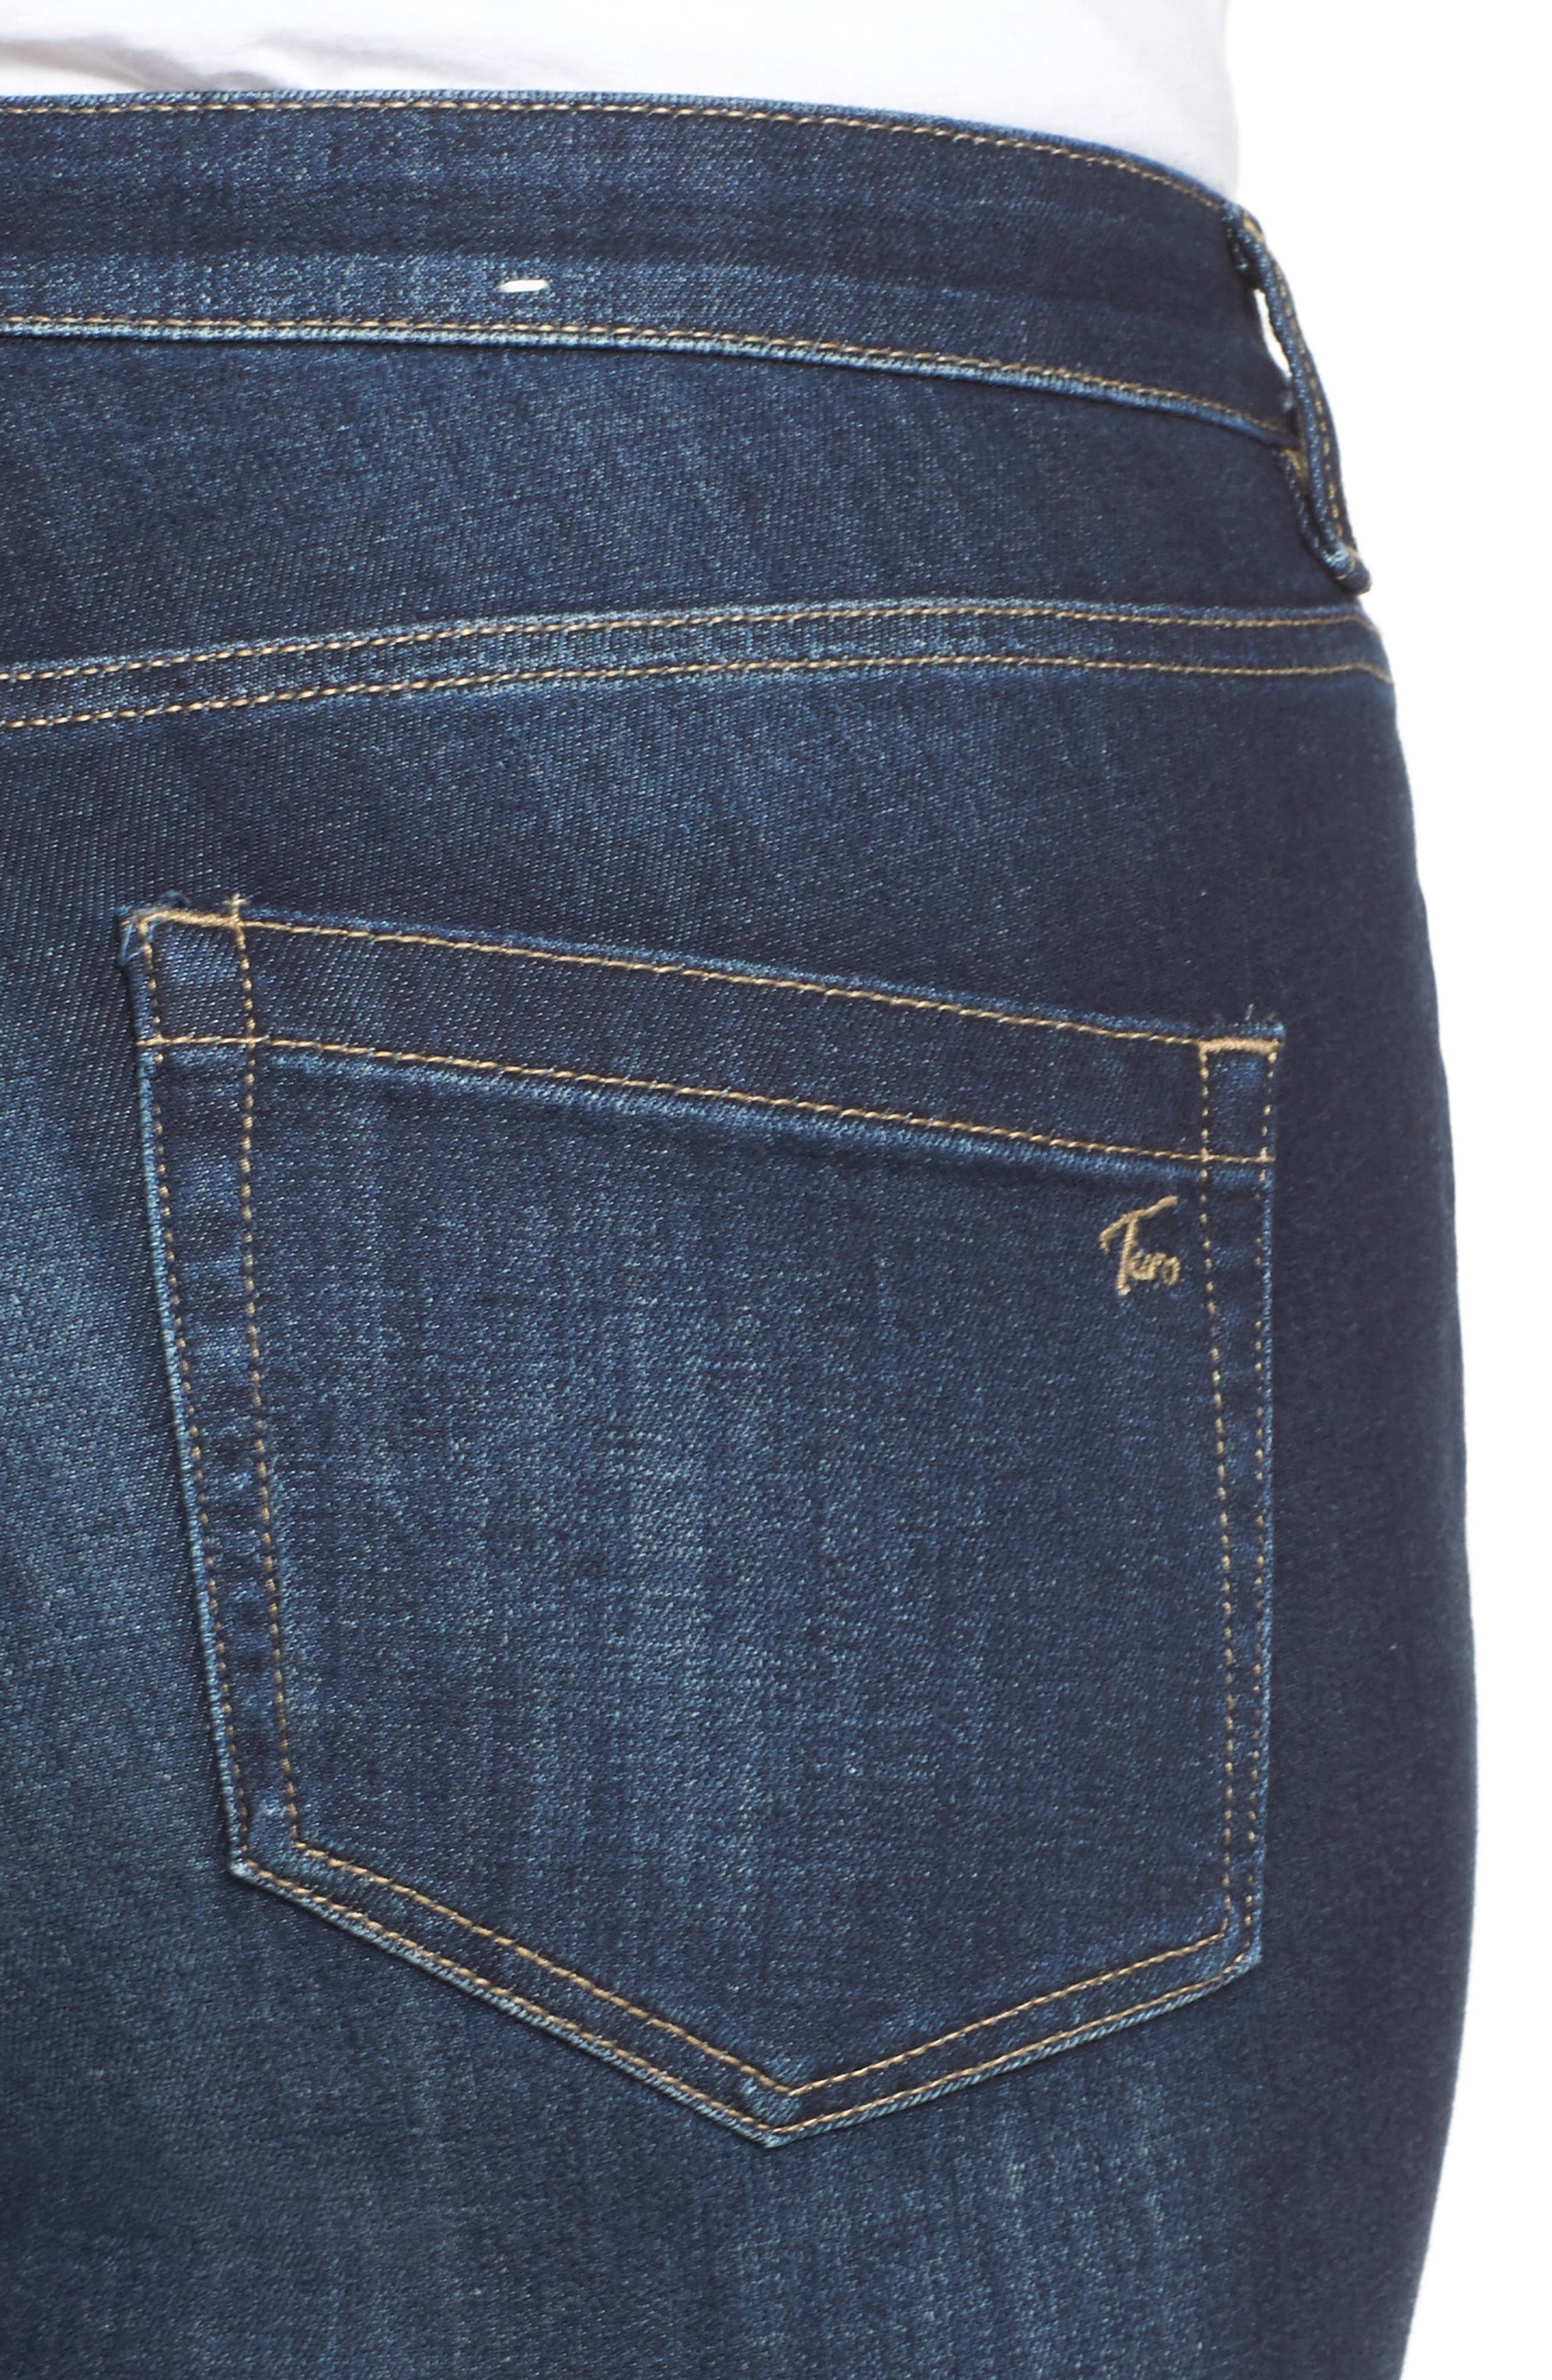 Stretch Skinny Jeans,                             Alternate thumbnail 4, color,                             DARK AUTHENTIC